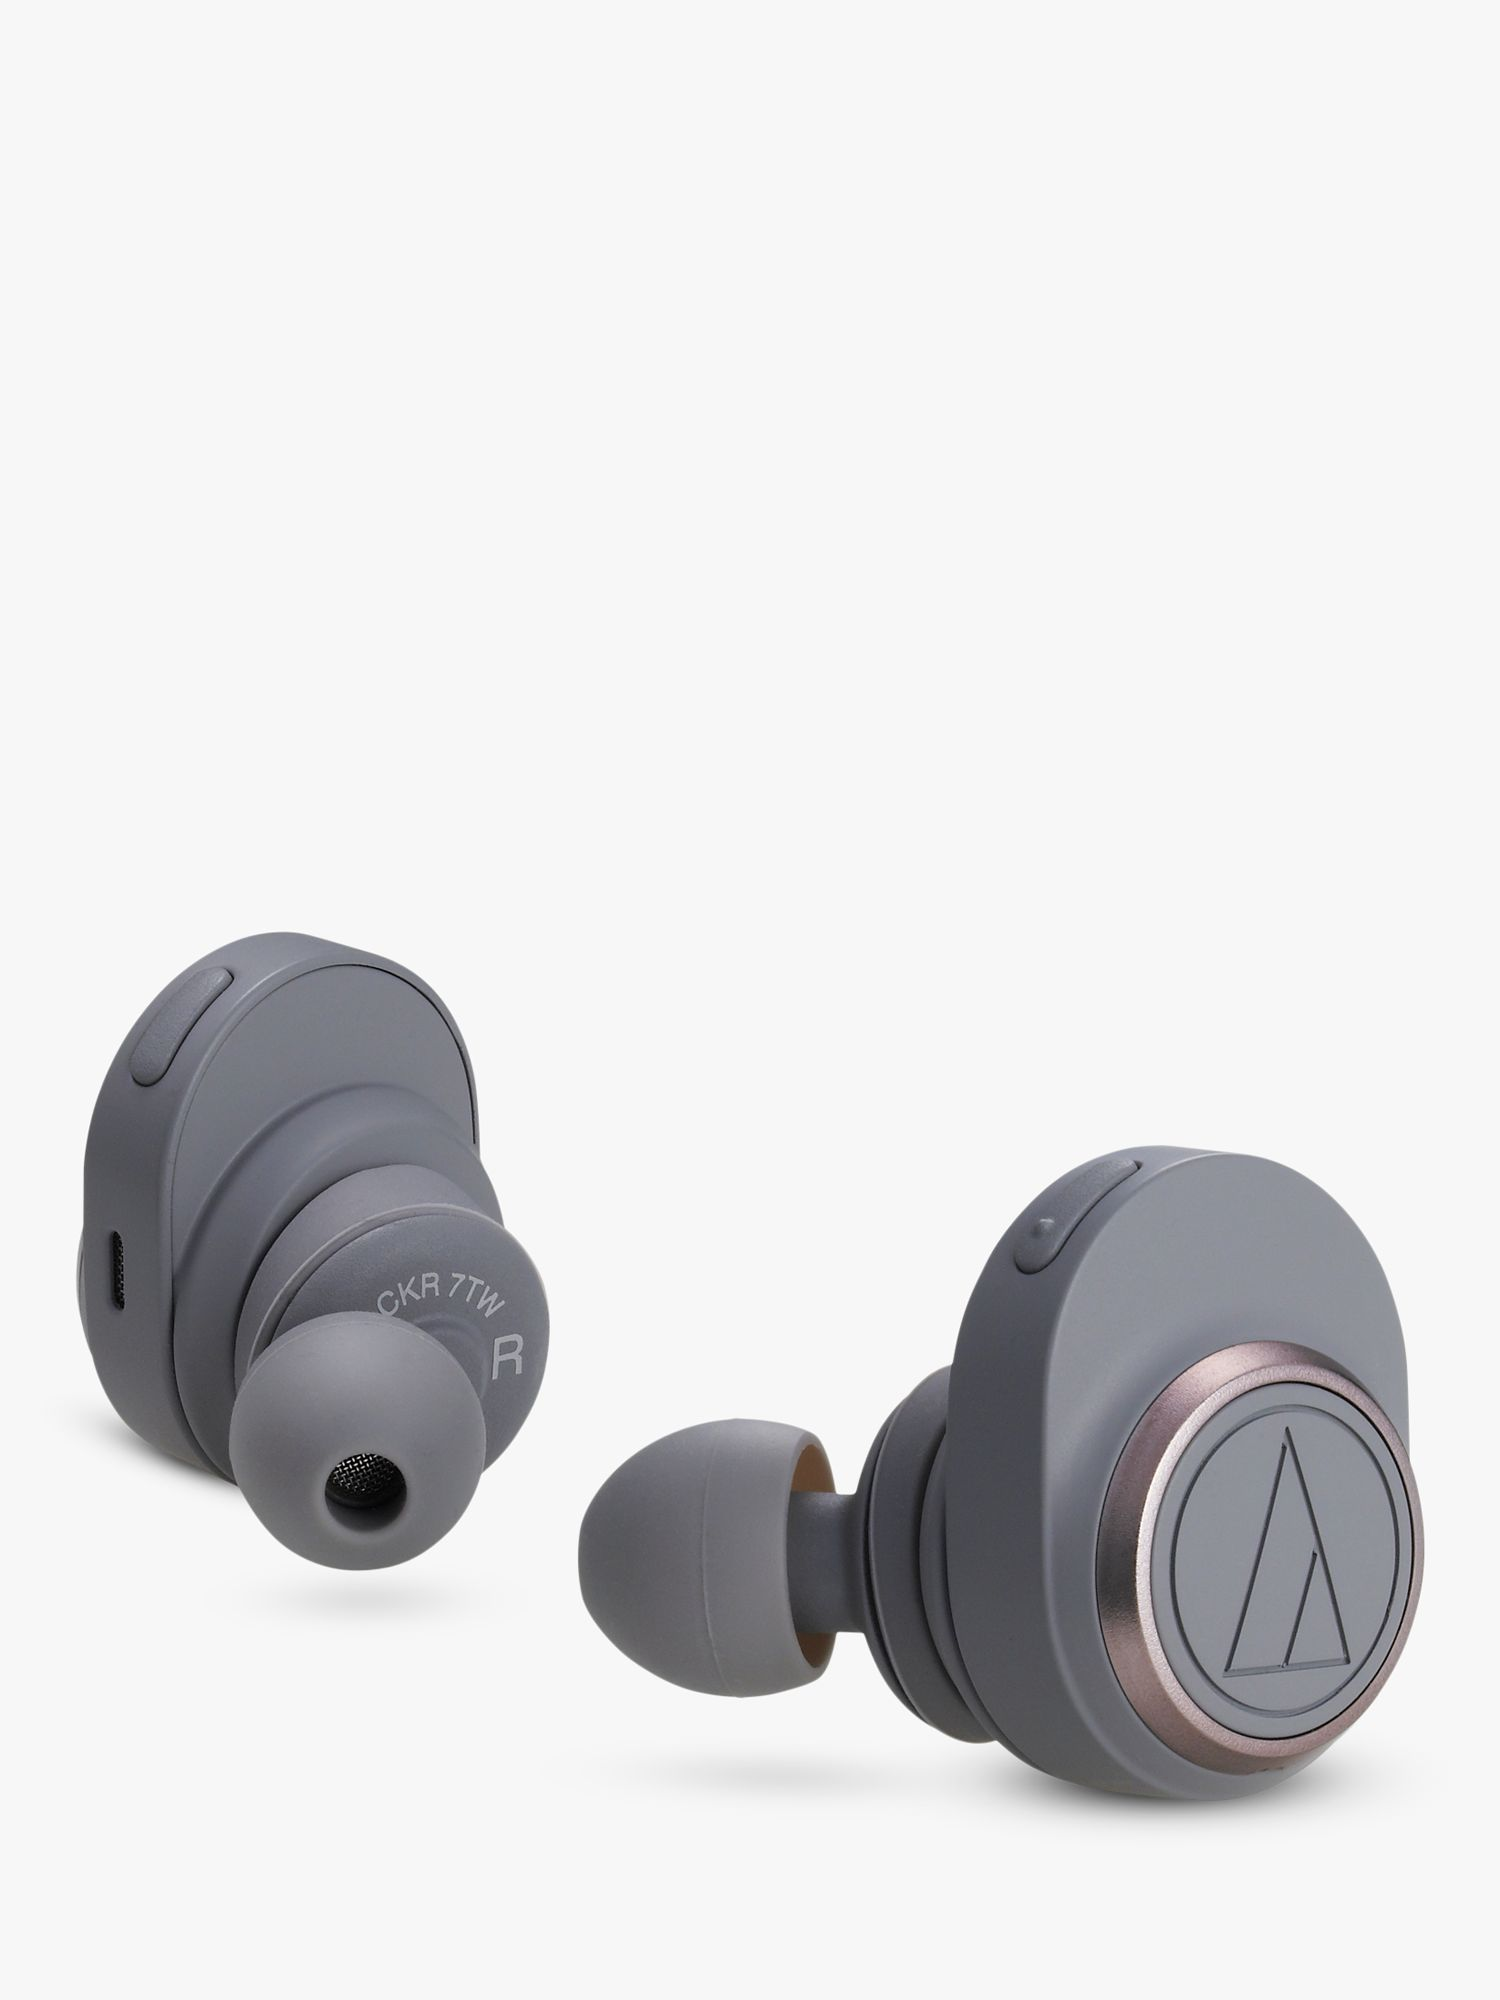 Audio-Technica Audio-Technica ATH-CKR7TW True Wireless Bluetooth In-Ear Headphones